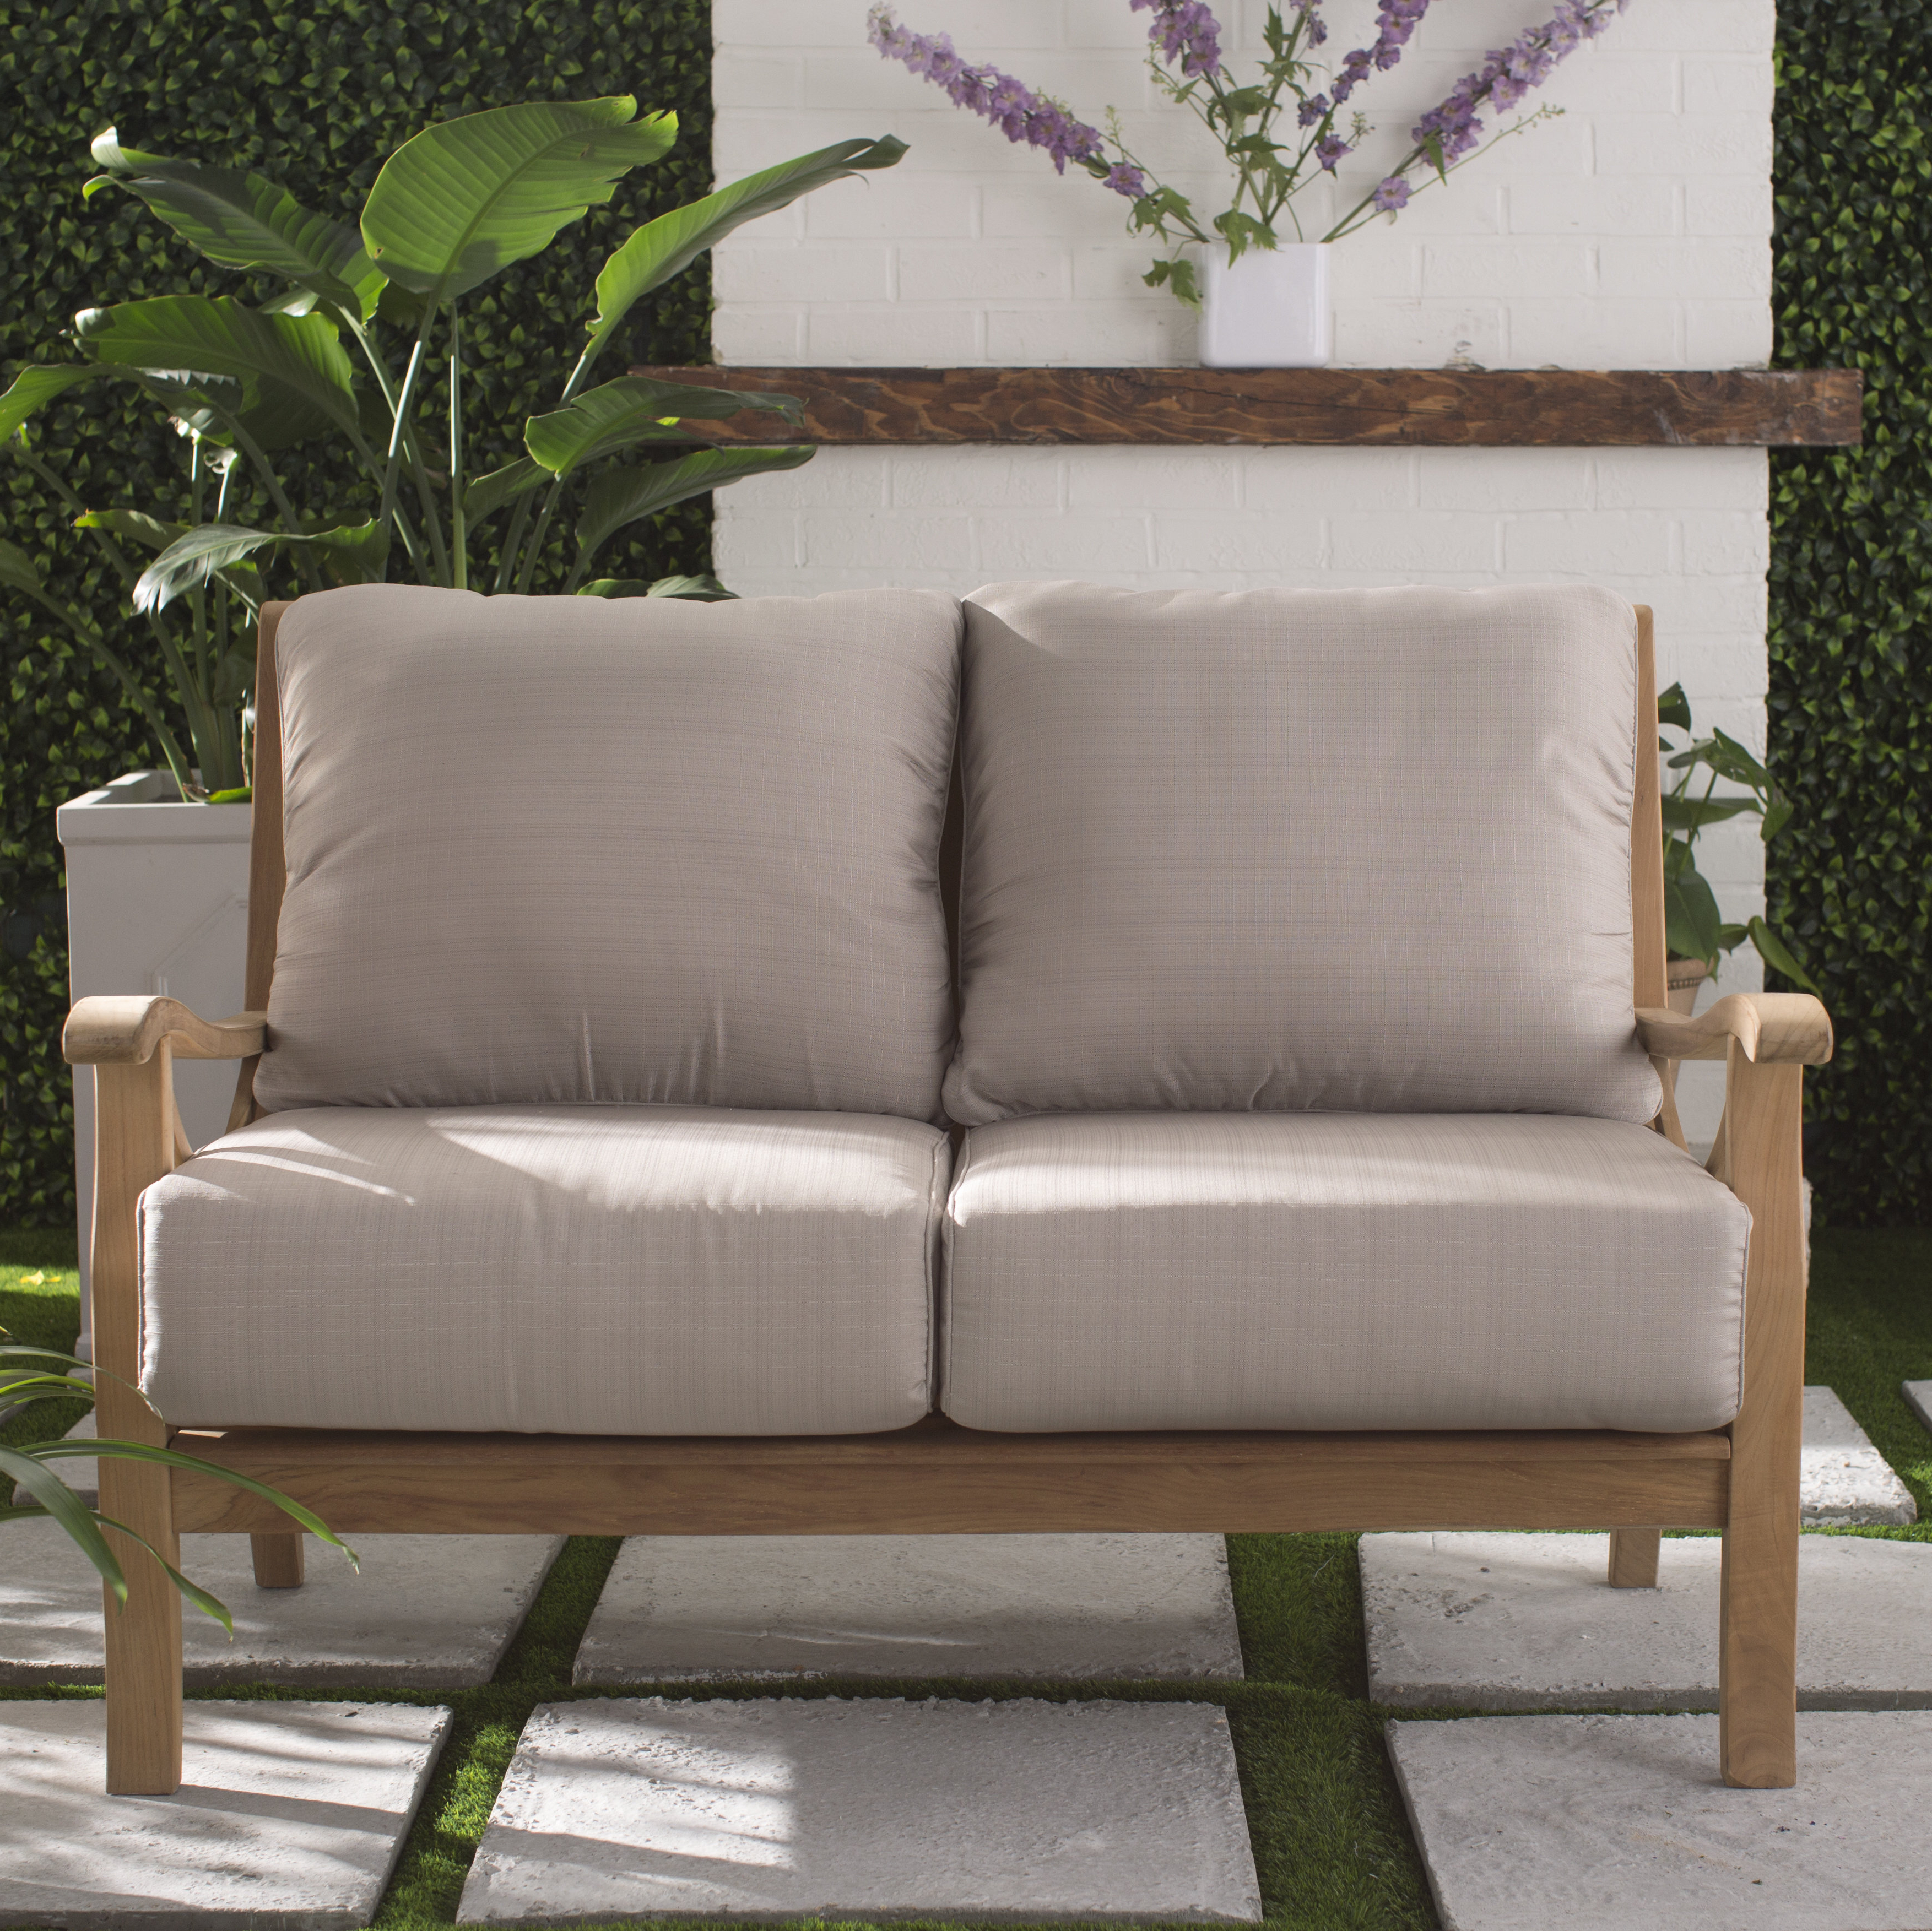 Lakeland Teak Loveseats With Cushions With Best And Newest Brunswick Teak Loveseat With Cushions (View 7 of 20)